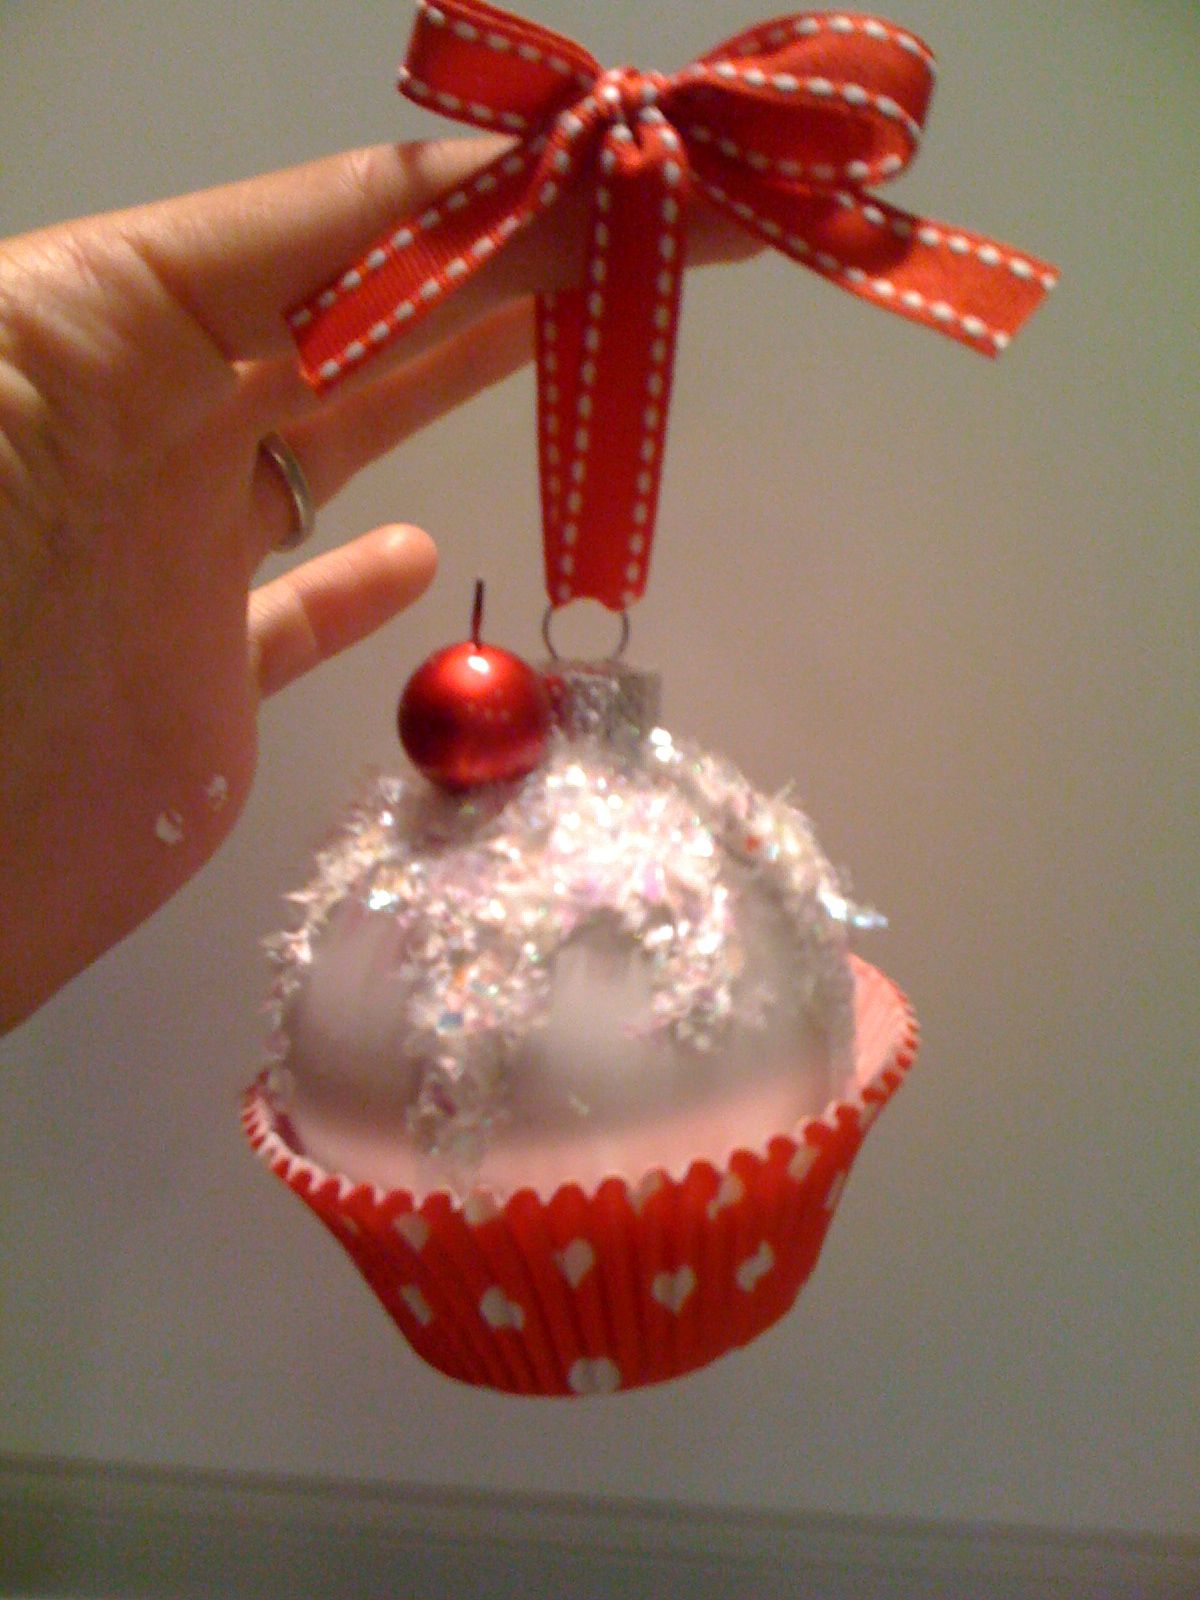 Easy Cute Diy Cupcake Ornaments Ornaments Weihnachten